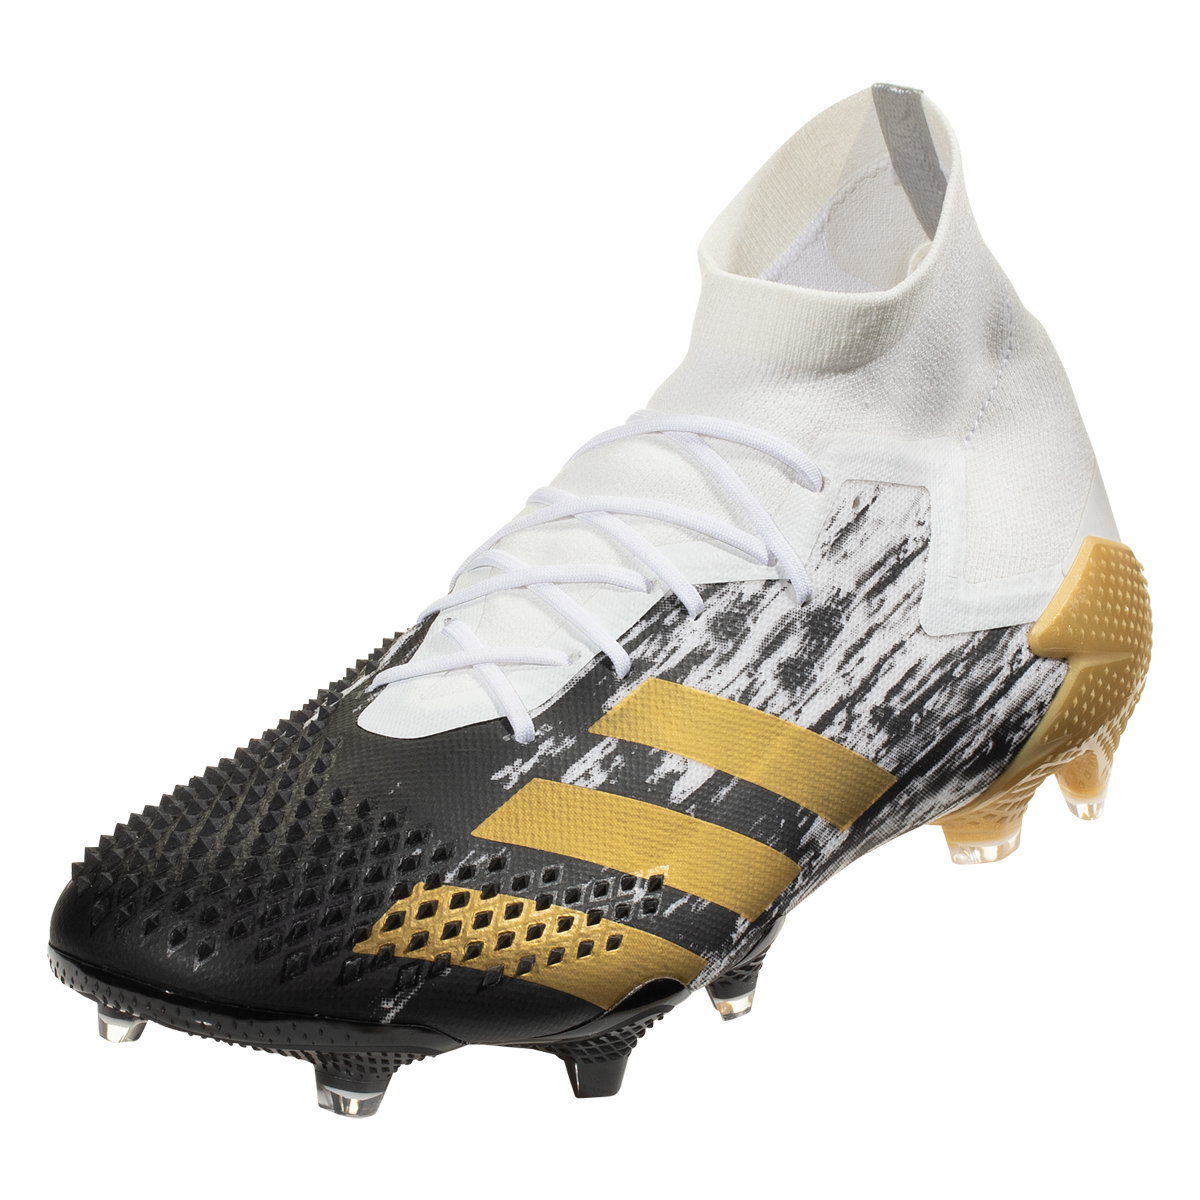 Adidas Predator 20 1 Fg Firm Ground Soccer Cleat White Metallic Gold Core Black 11 5 In 2020 Soccer Cleats Adidas Predator Cleats